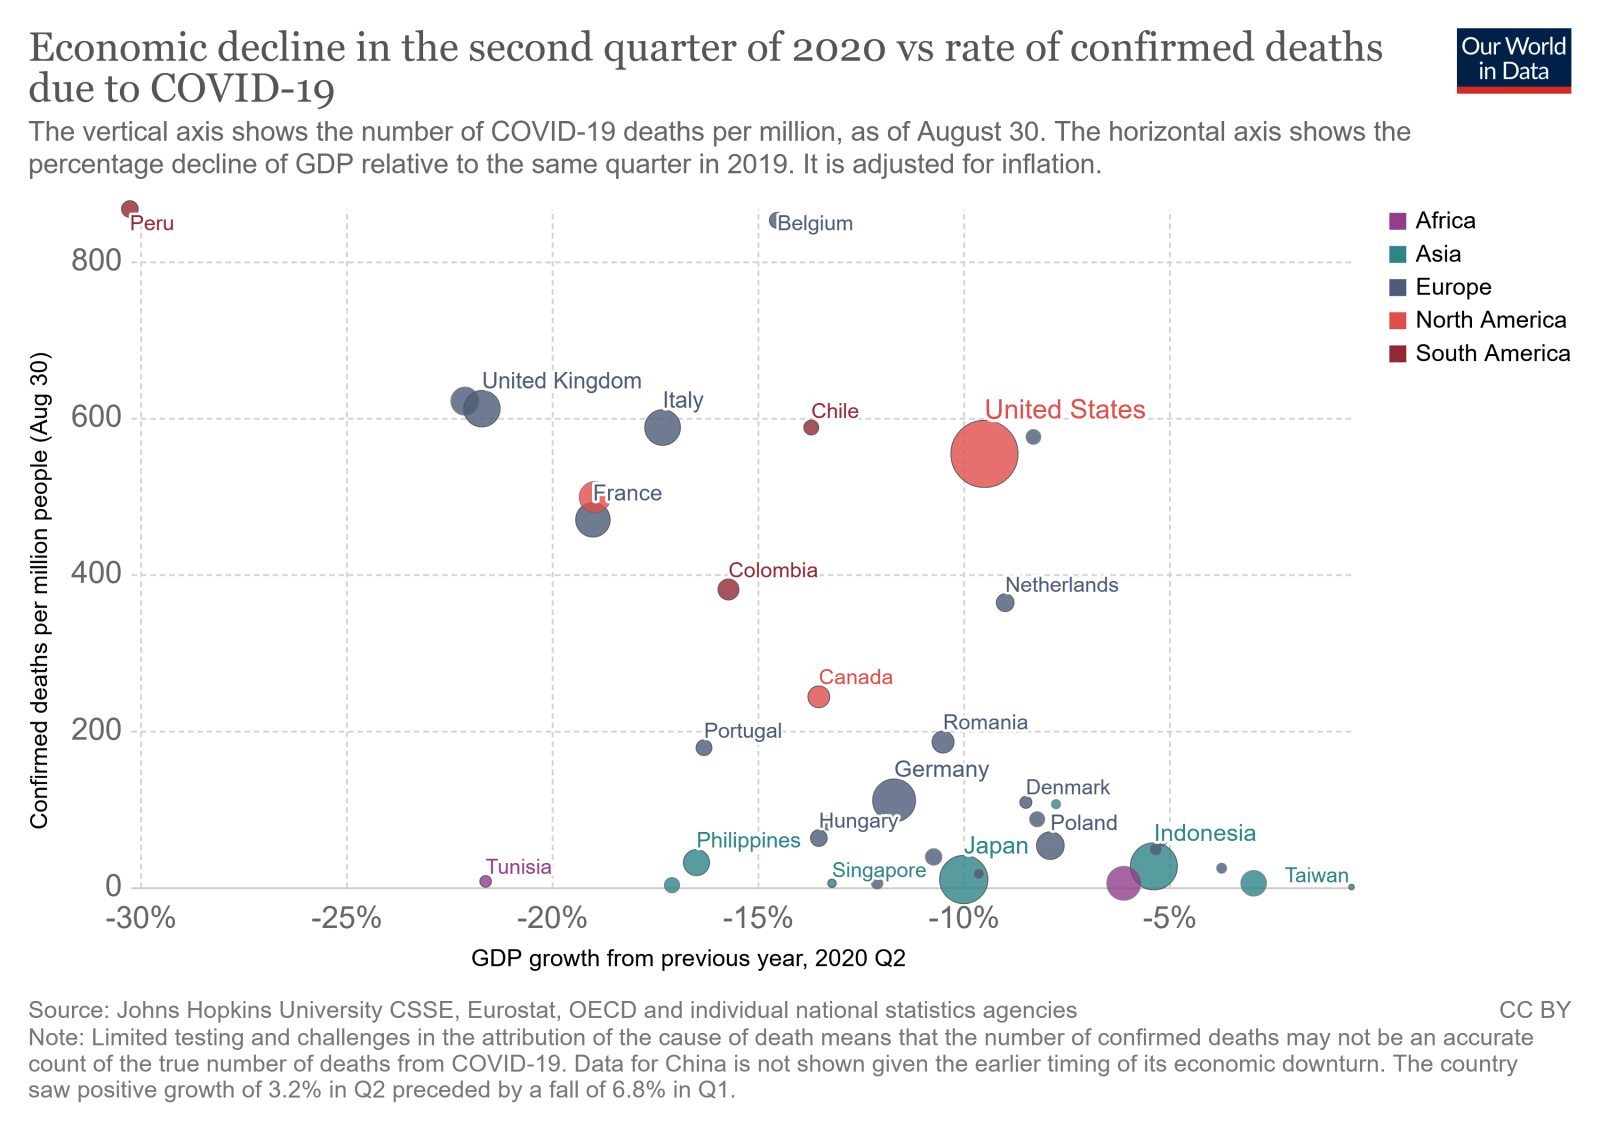 q2-gdp-growth-vs-confirmed-deaths-due-to-covid-19-per-million-people.png